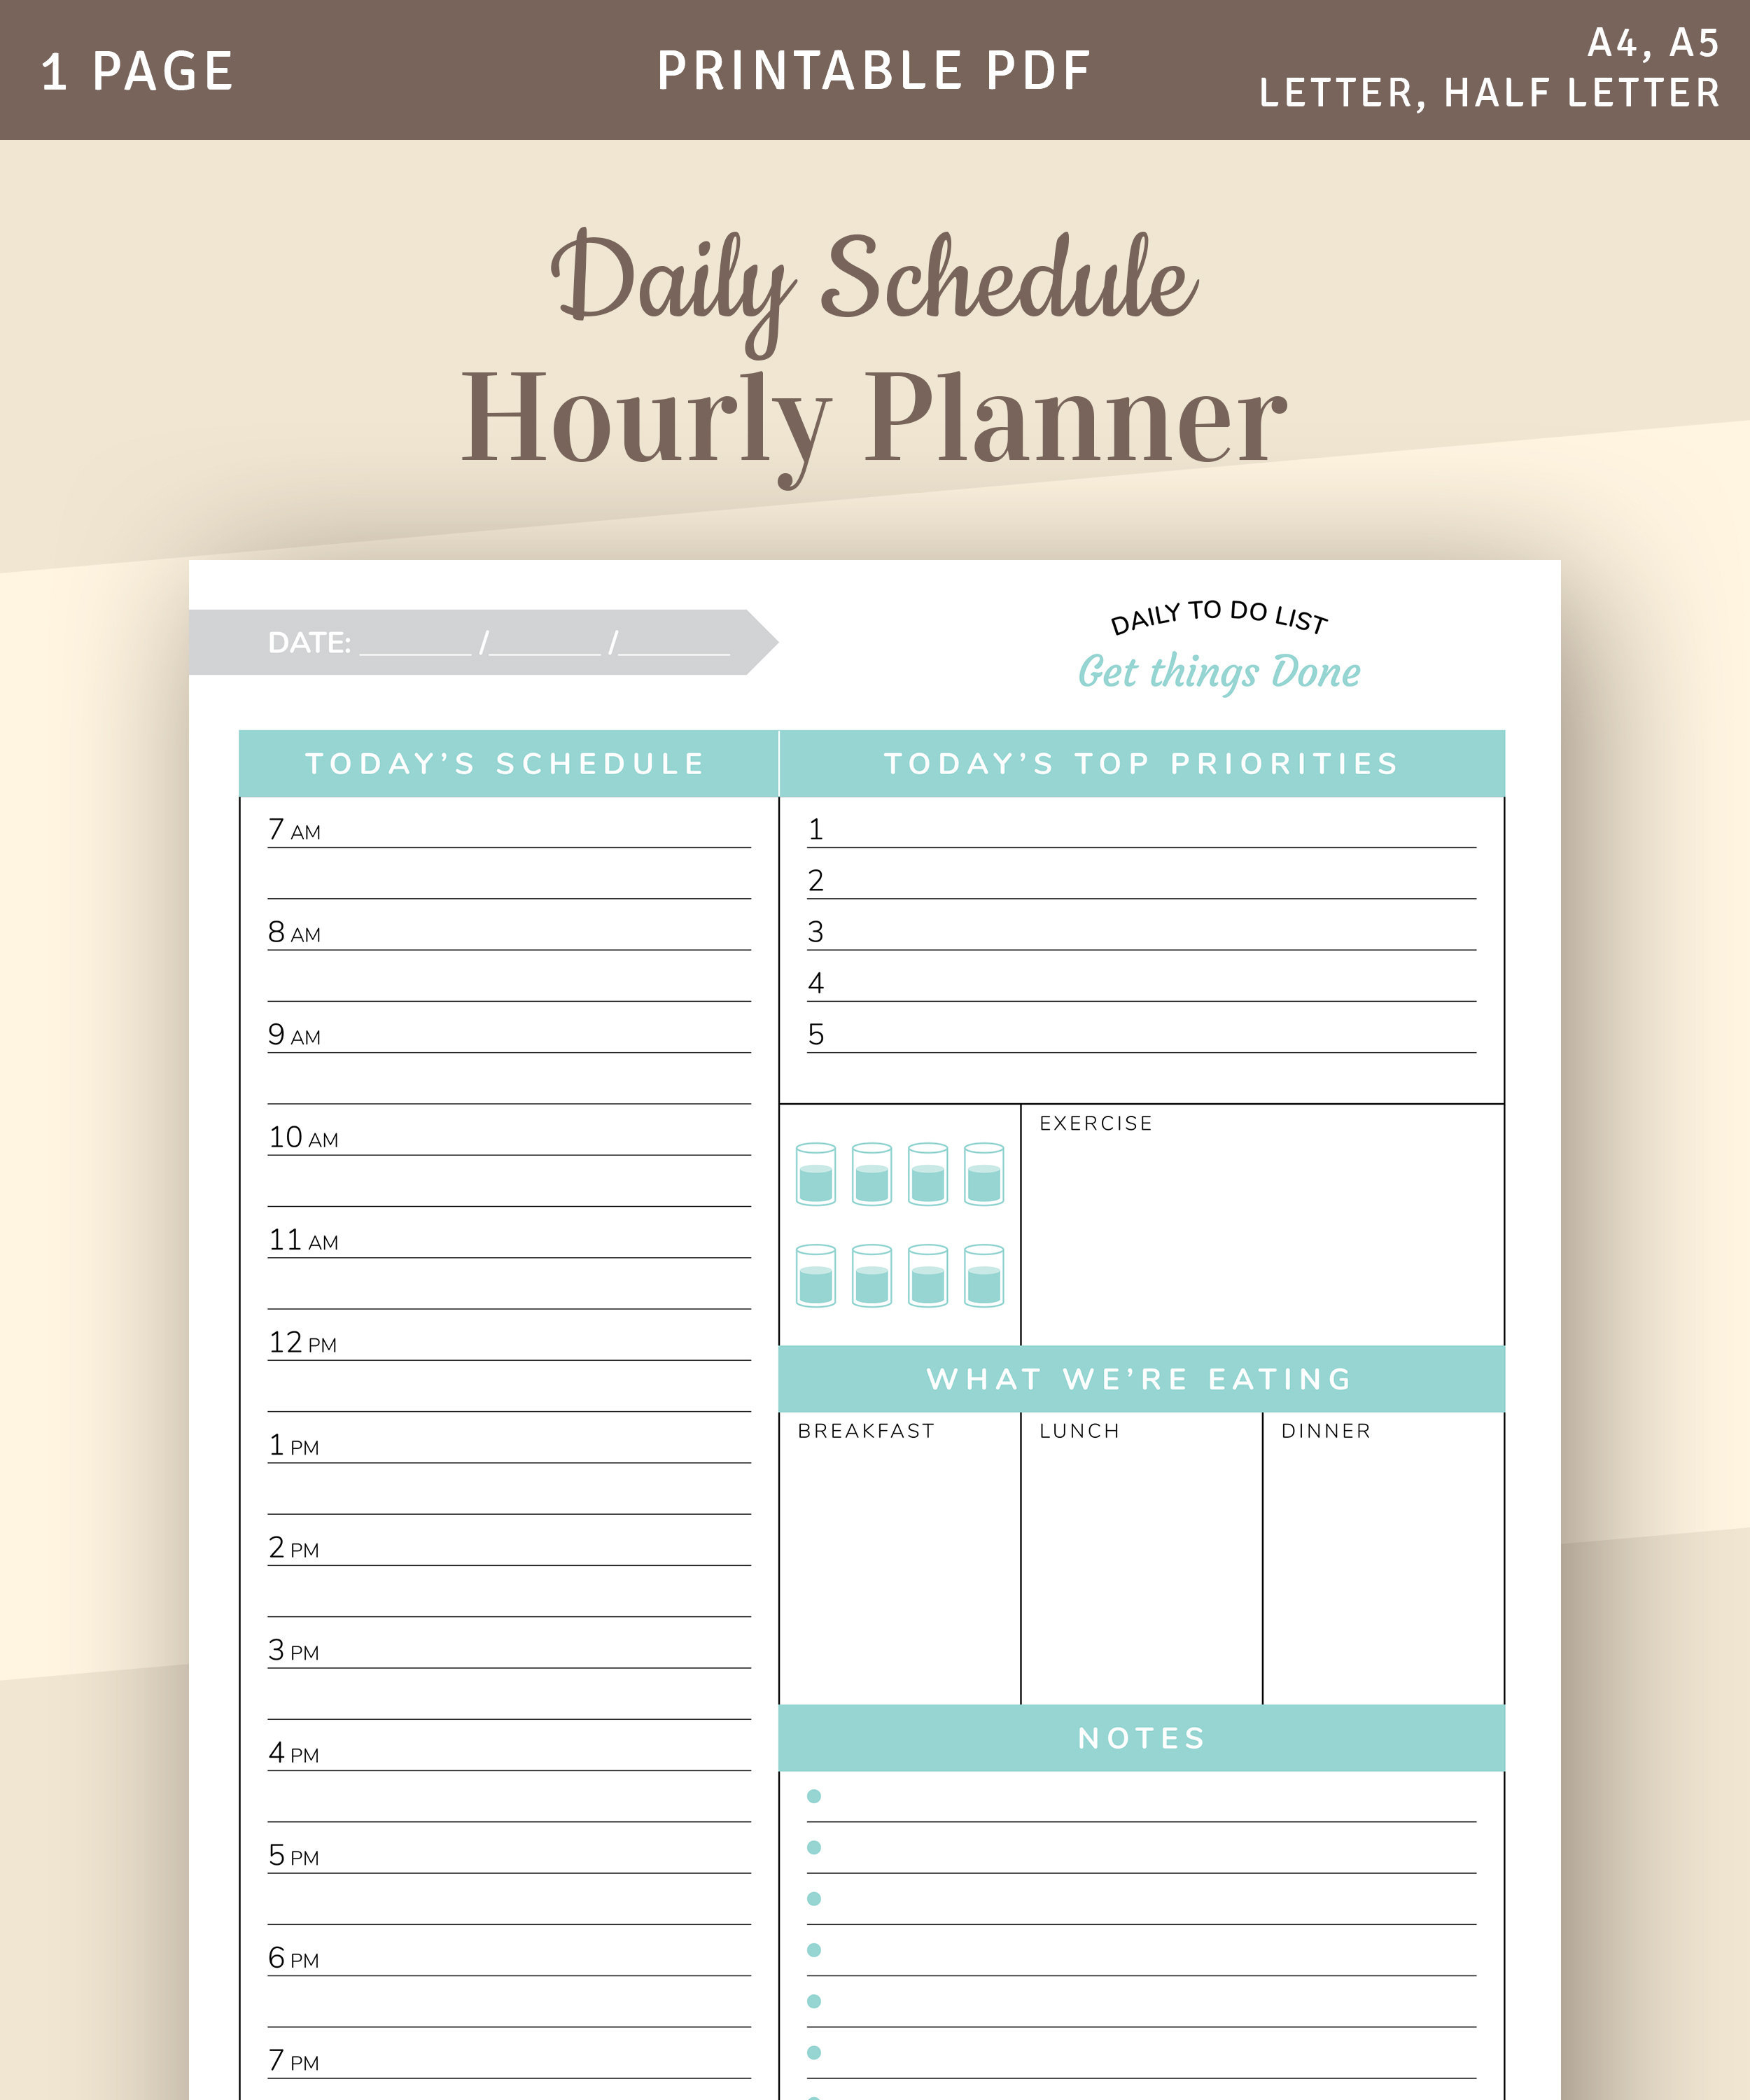 Daily Planner 2019 2020, Daily Planner Printable Template With Top Daily  Priorities, Daily Schedule Hourly Planner, Agenda Template, Pdf